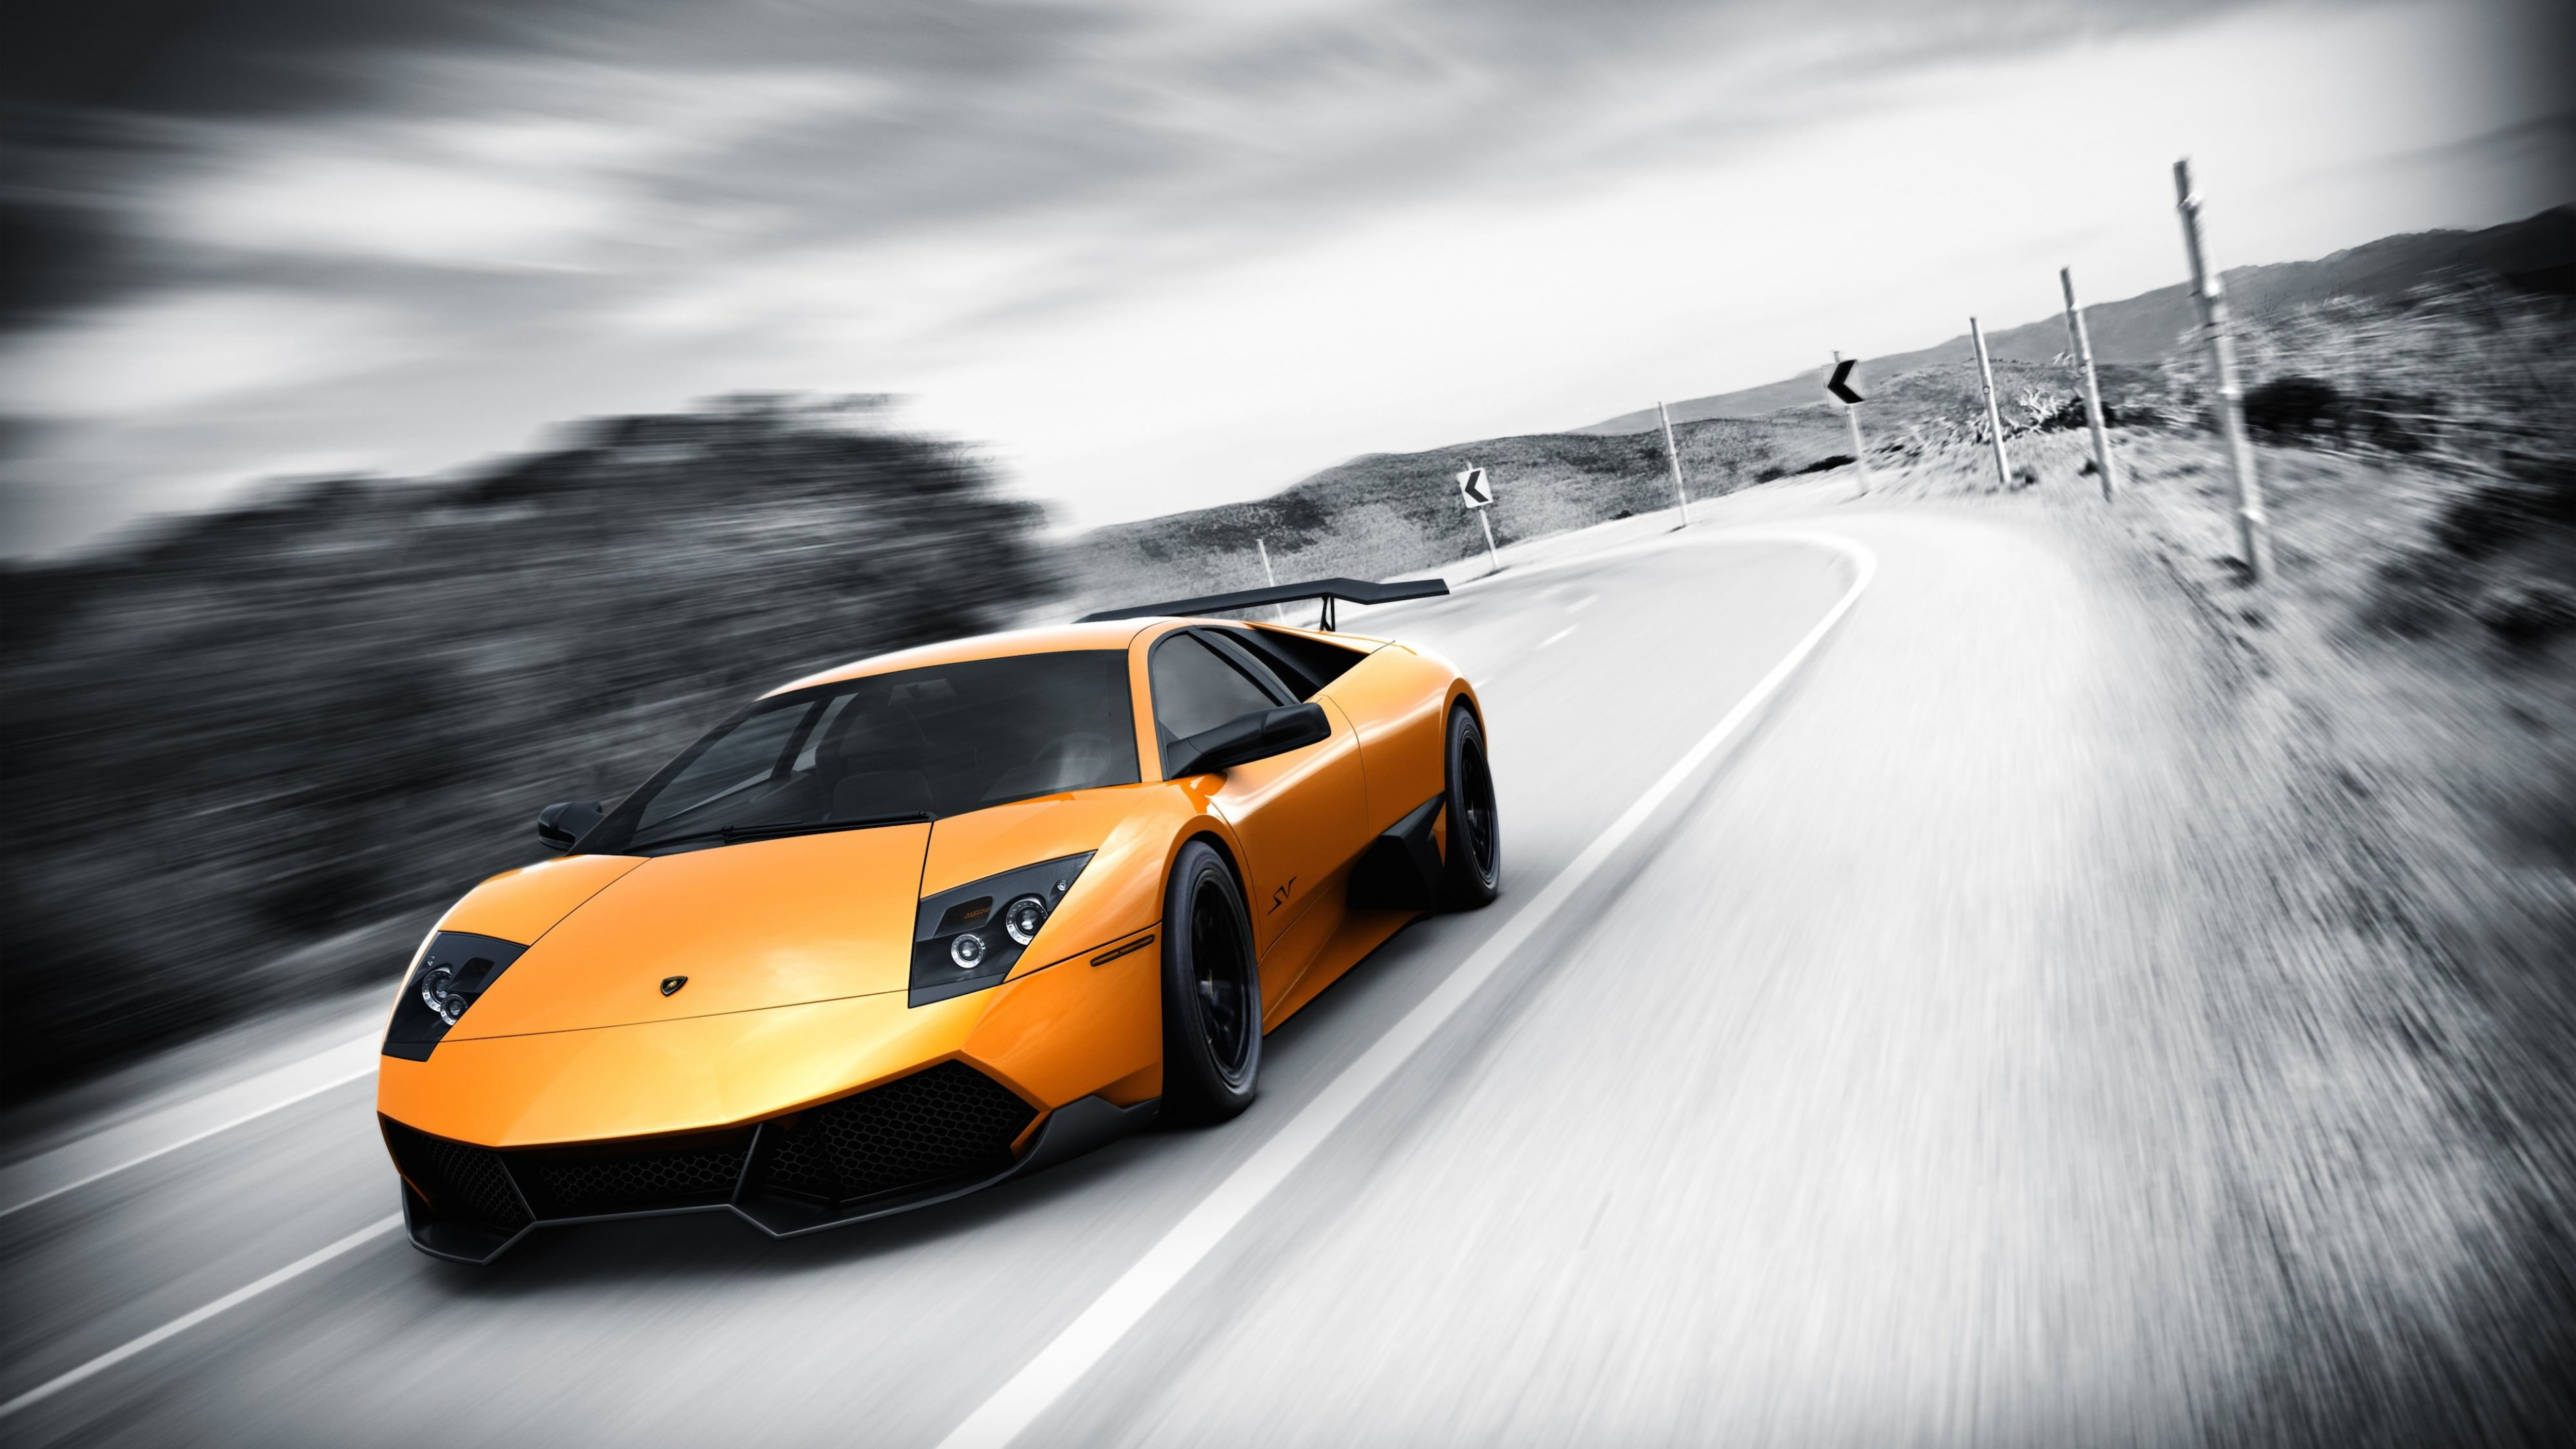 Murcielago 4k Wallpapers For Your Desktop Or Mobile Screen Free And